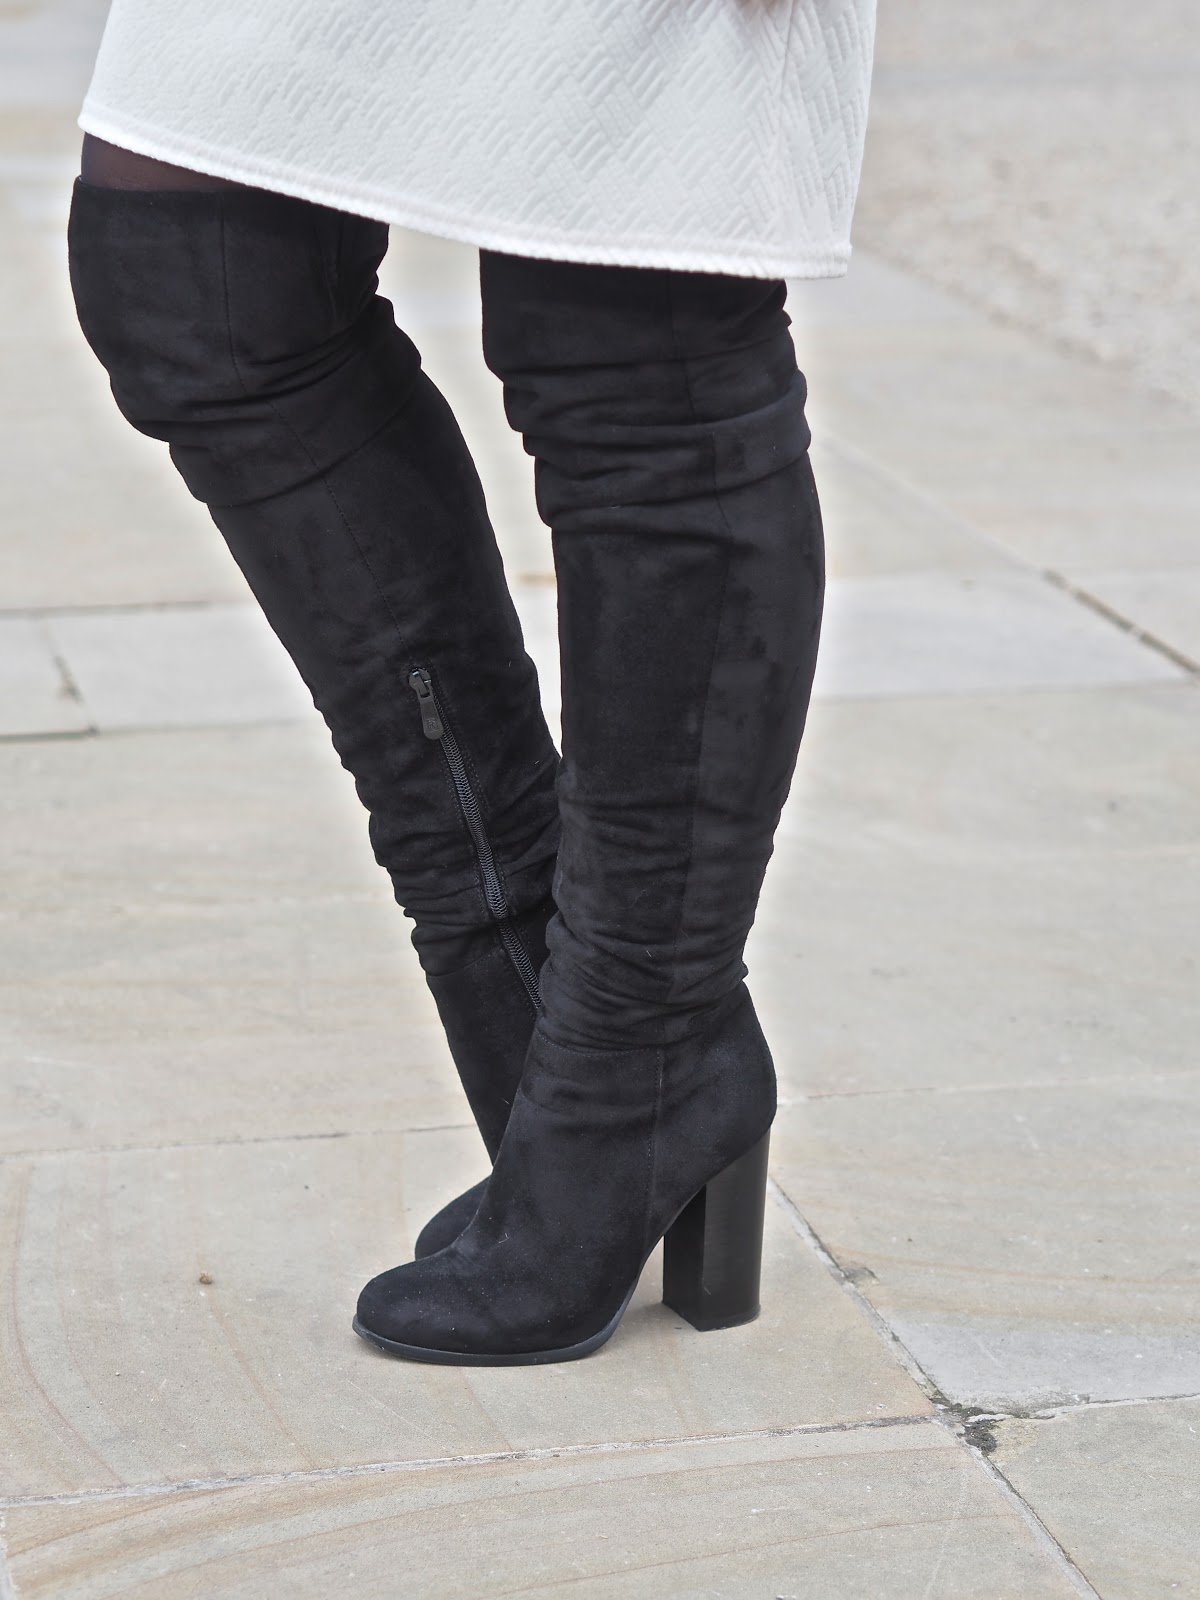 white dress and black thigh high boots in Chelsea, London